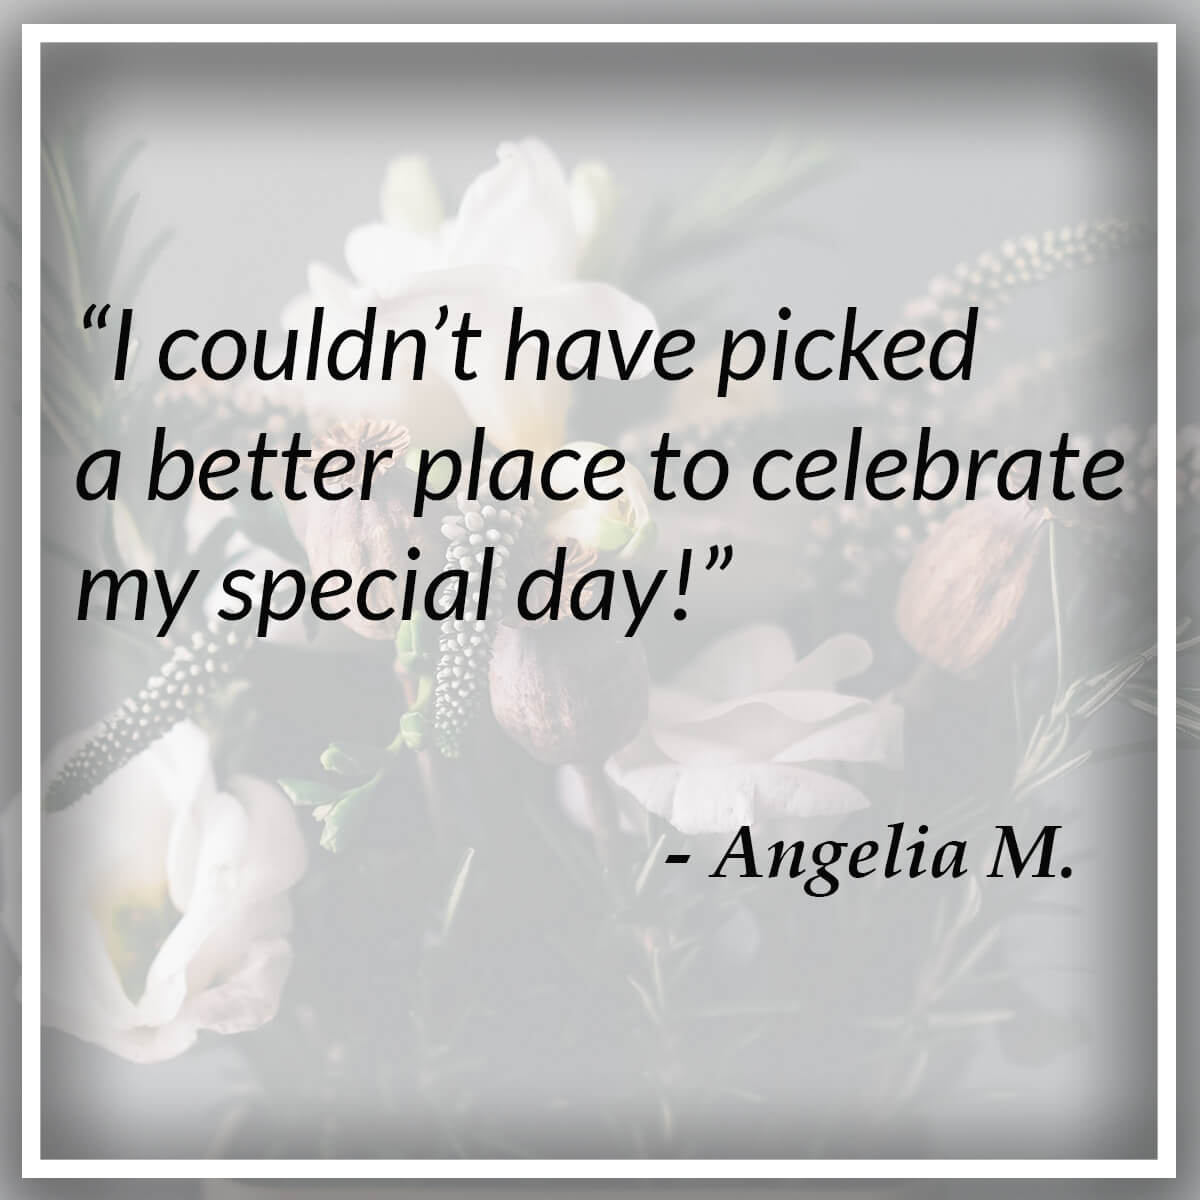 I couldn't have picked a better place to celebrate my special day! - Angelia M.